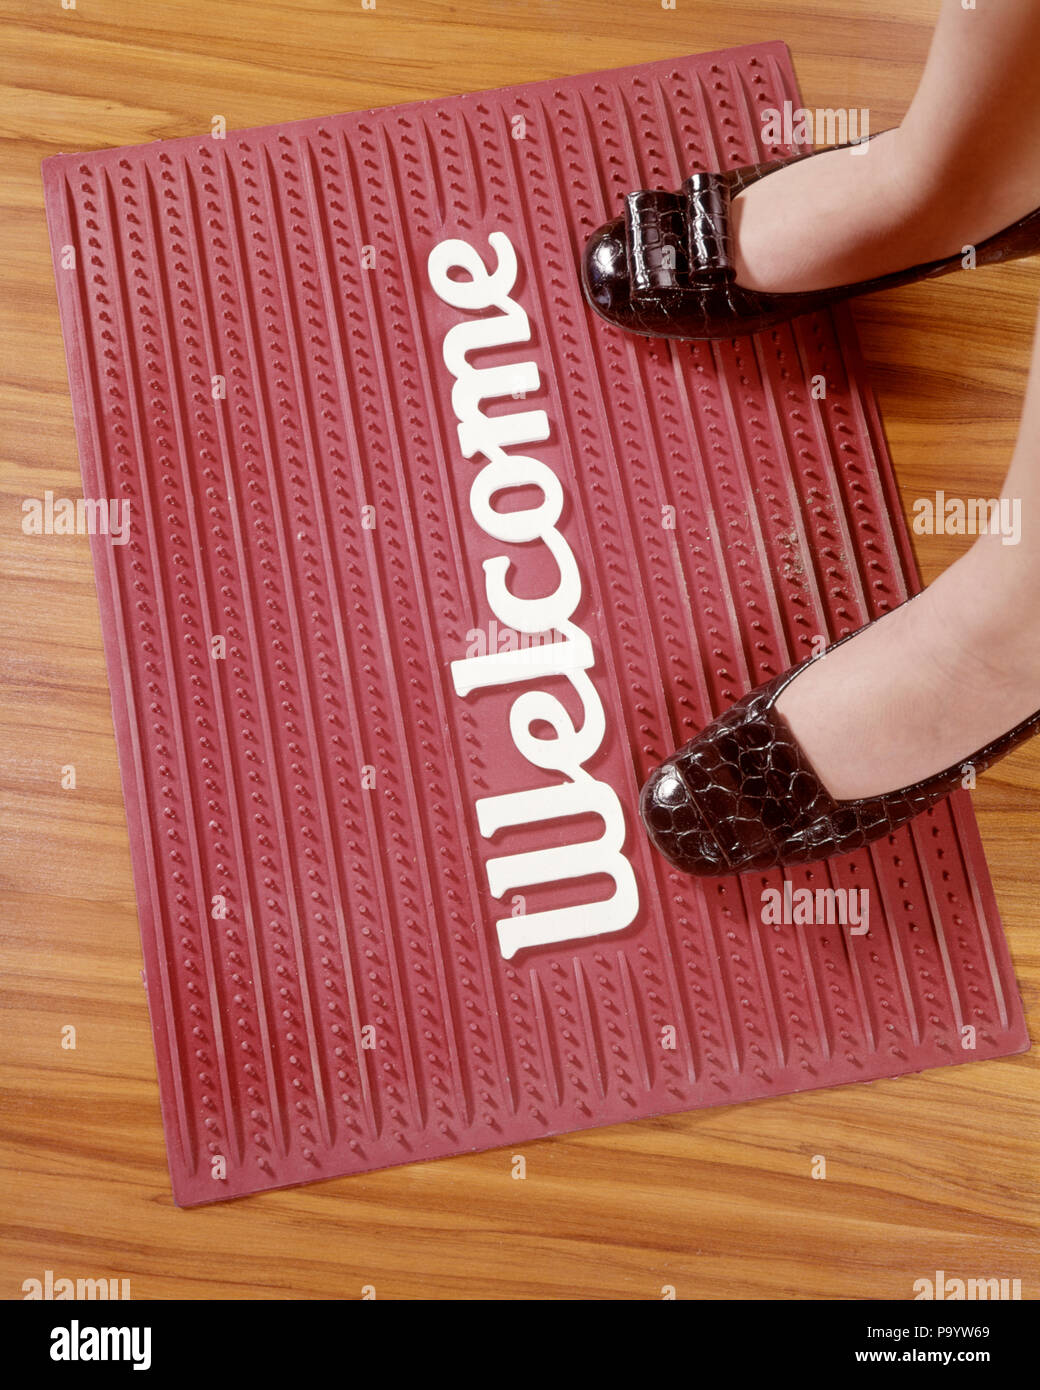 1970s WOMAN FEET BLACK SHOES ON RED RUBBER WELCOME MAT  - ks6441 HAR001 HARS HIGH ANGLE CUSTOMER SERVICE EQUAL PAY WORD ARRIVING OPPORTUNITY EMPLOYMENT OCCUPATIONS CONCEPT CONCEPTUAL GLASS CEILING SEXISM SYMBOLIC ARRIVAL DESTINATION DISCRIMINATION EQUALITY GENDER CAUCASIAN ETHNICITY HAR001 OLD FASHIONED REPRESENTATION - Stock Image